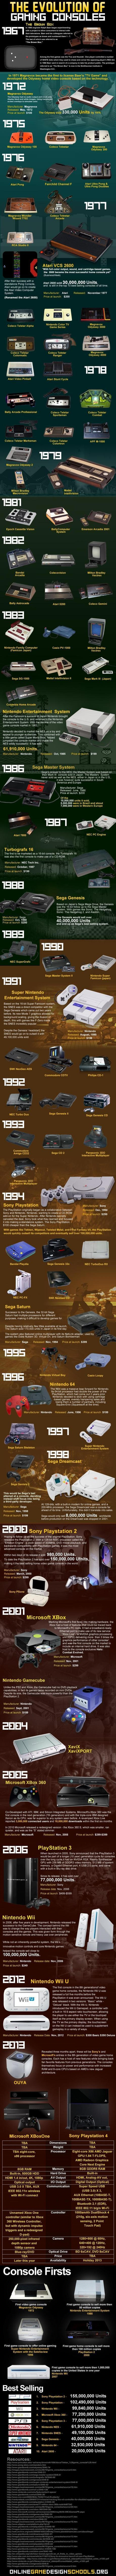 A History of Gaming Console Evolution